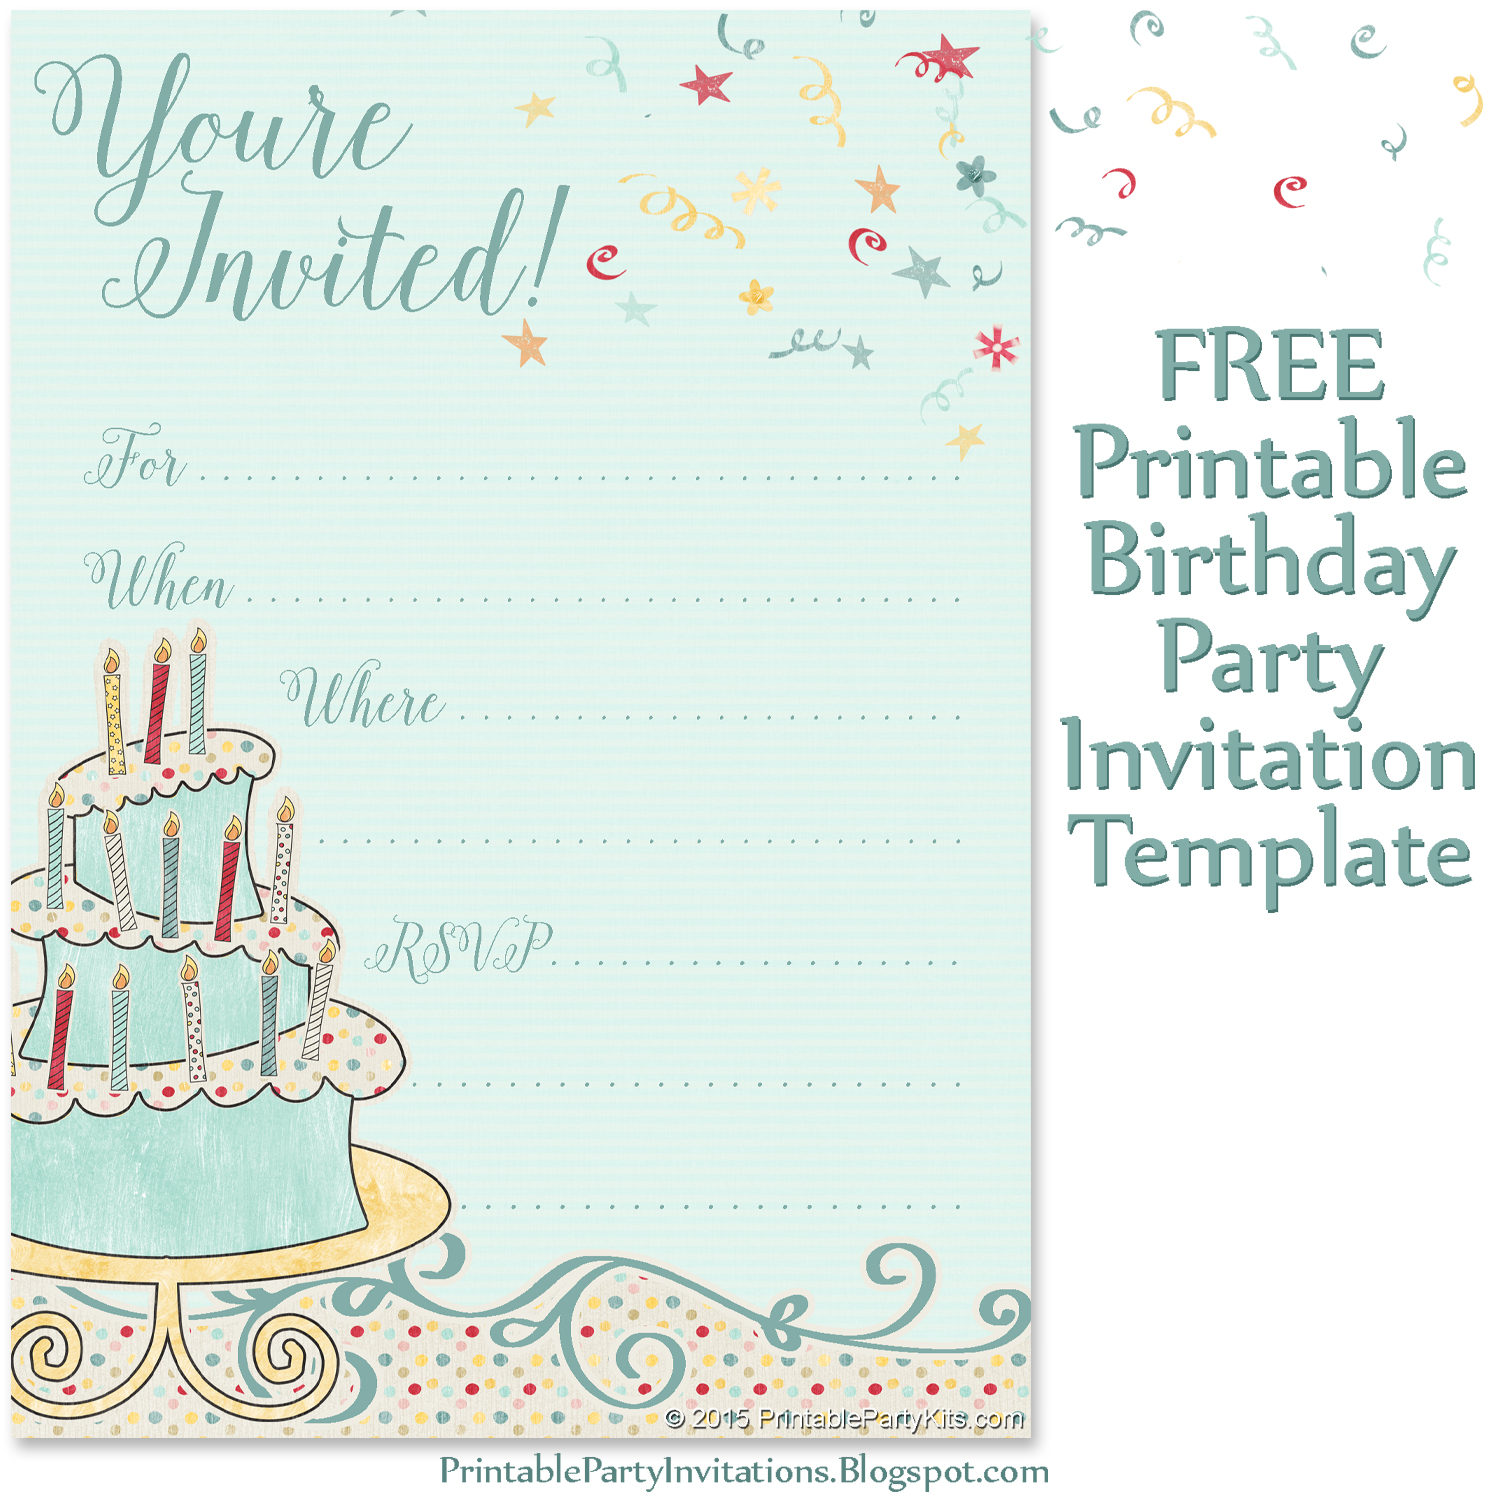 Free printable party invitations whimsical birthday party invite filmwisefo